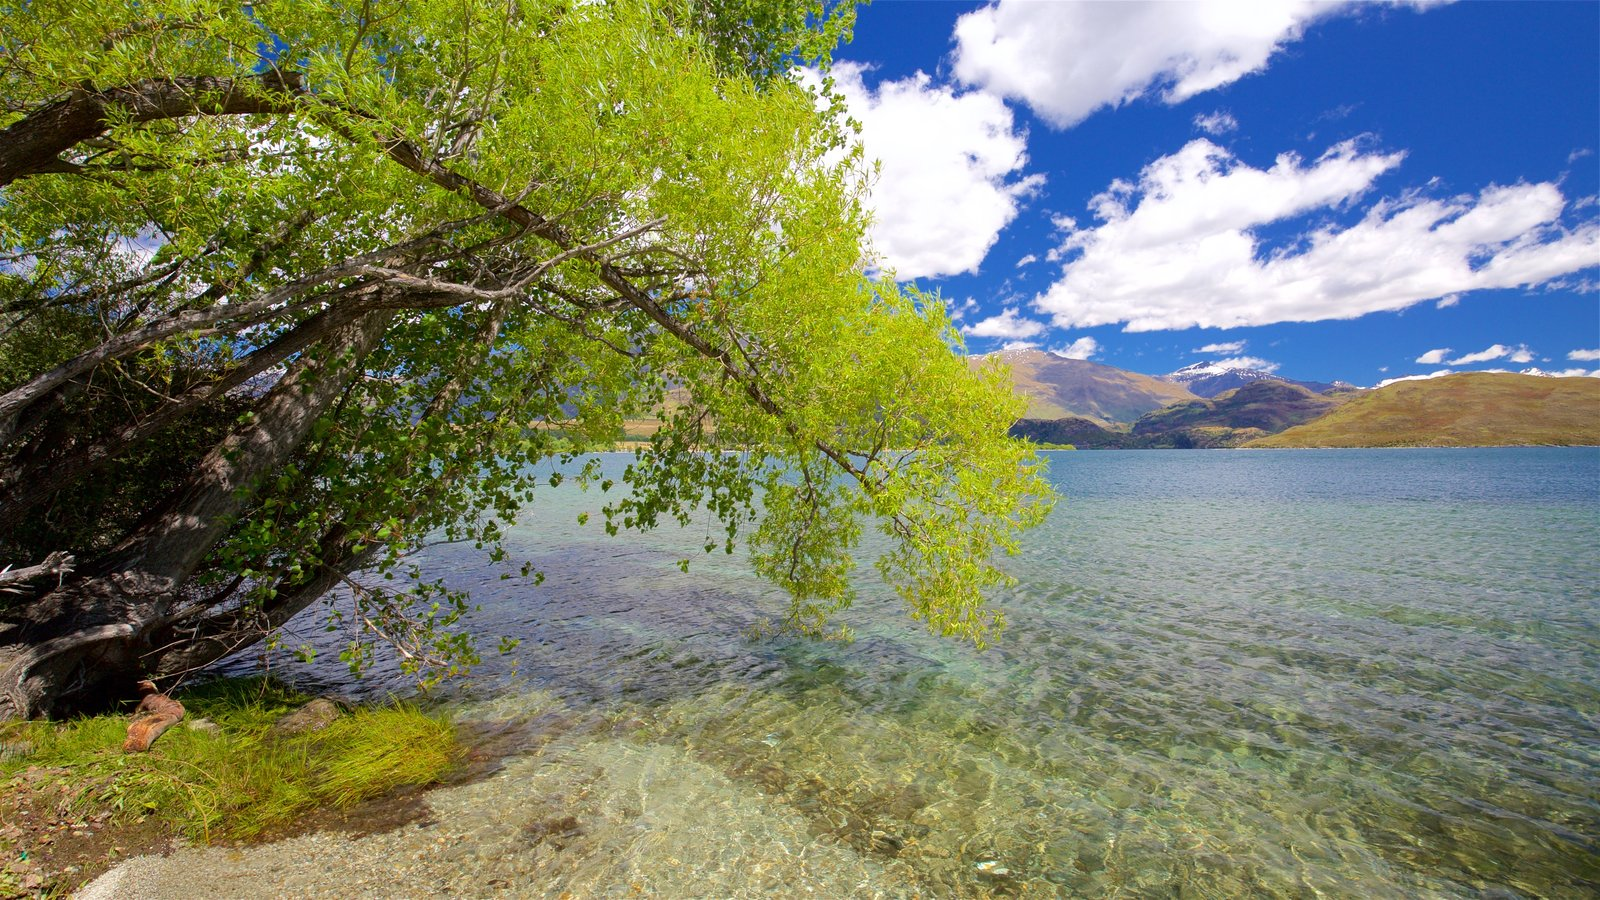 Wanaka featuring a lake or waterhole and a pebble beach